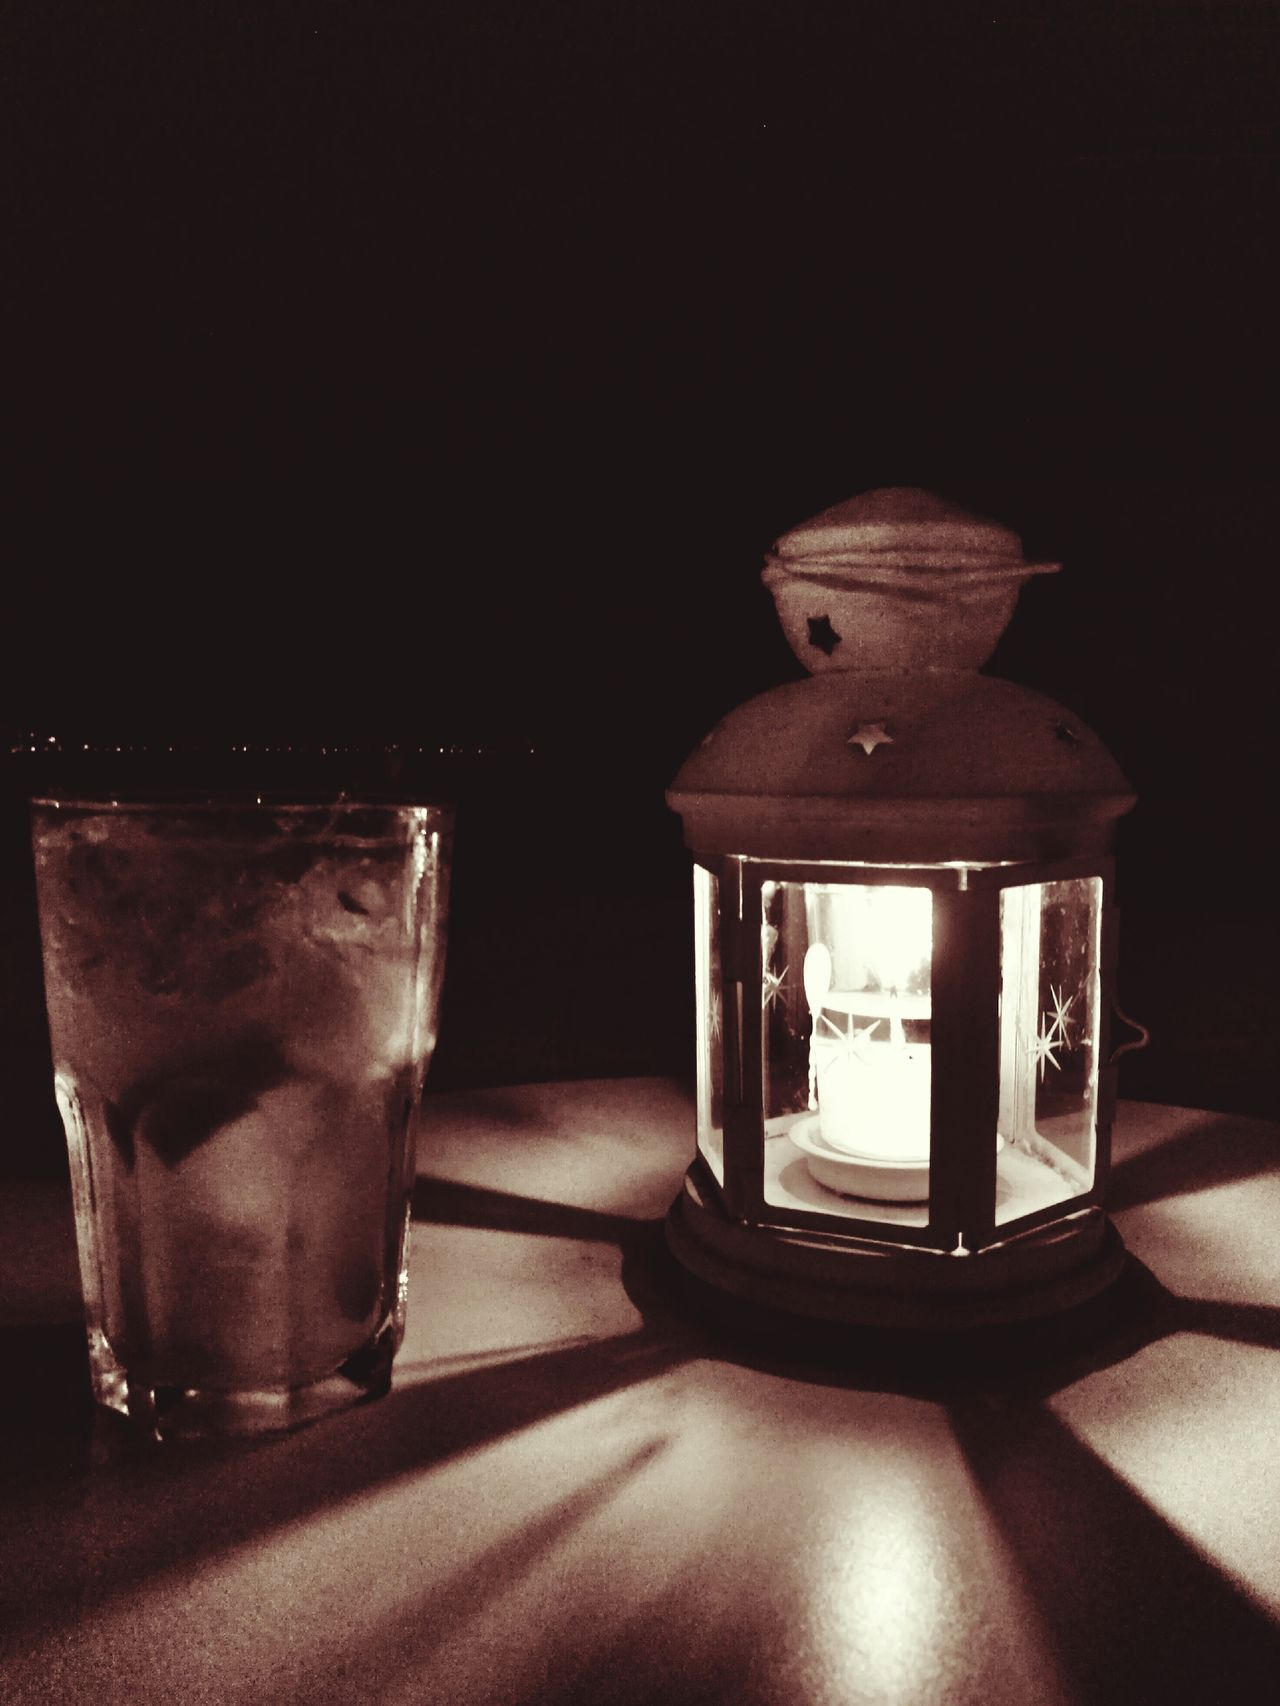 Good evening 🍷 Table Drinking Glass Food And Drink No People Drink Day Glass Indoors  Close-up Lantern Lantern Light Candle Candle Light Candle Night EyeEmNewHere EyeEm Selects